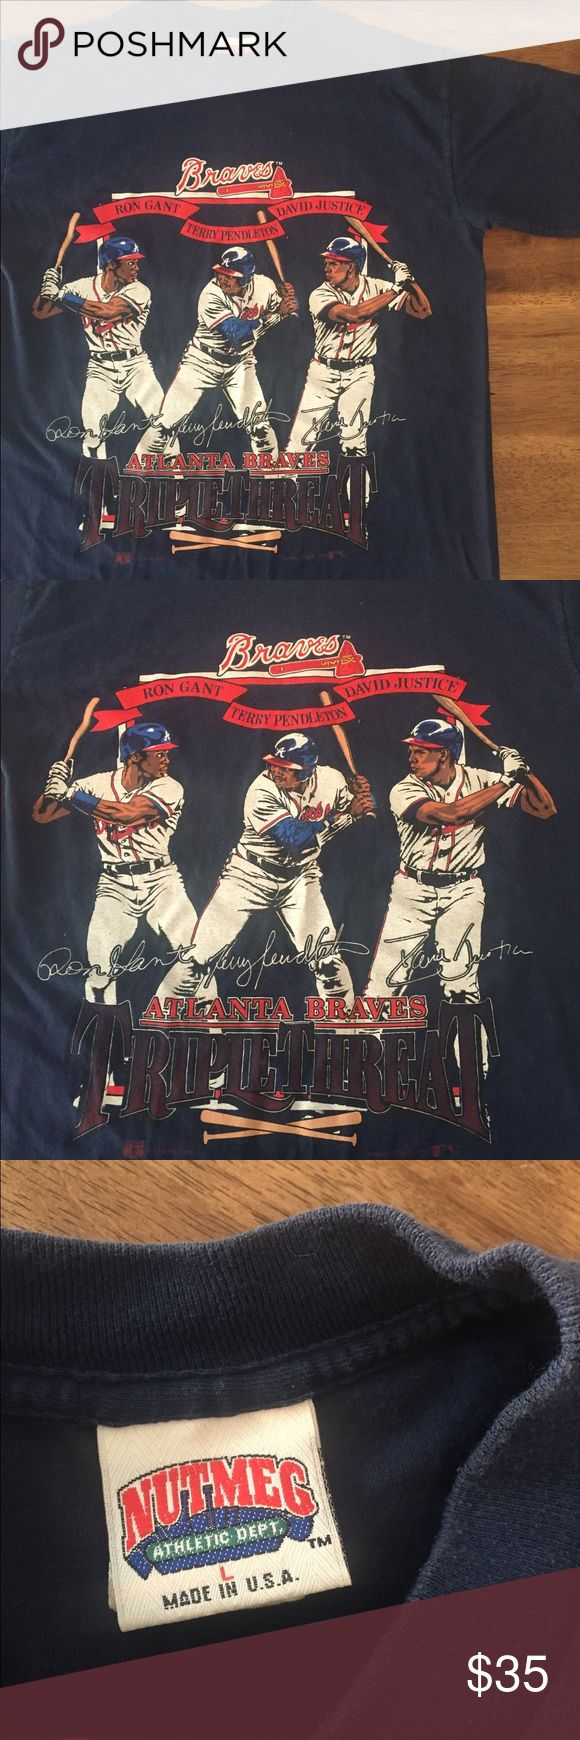 Vintage Atlanta Braves T shirt triple threat Great condition! No stains and minimal fading. A true vintage t shirt (1992) 😊❤️ Shirts Tees - Short Sleeve